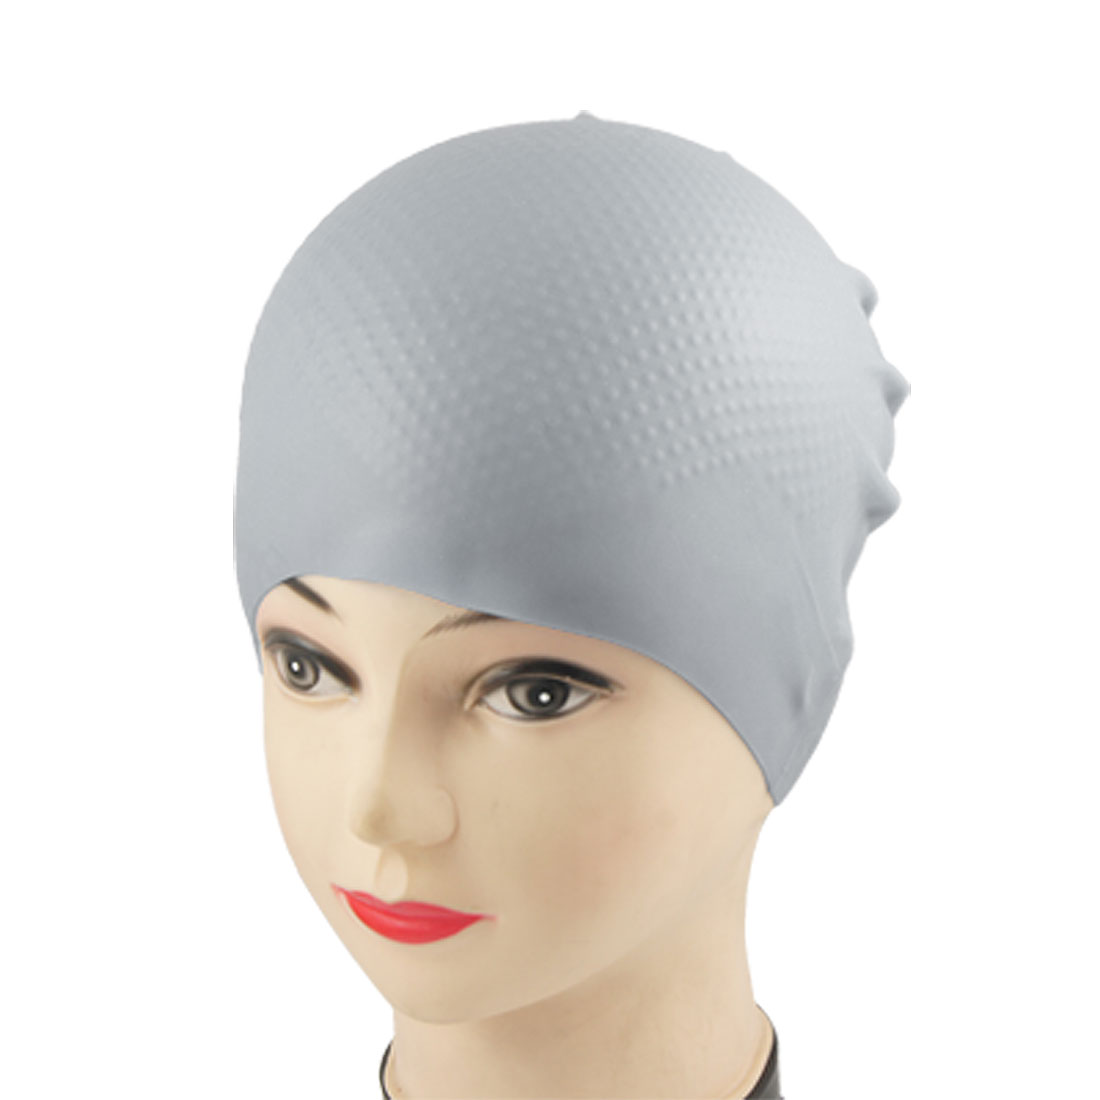 Adult Swimmer Inside Grains Flexible Silicone Swimming Cap Hat Gray